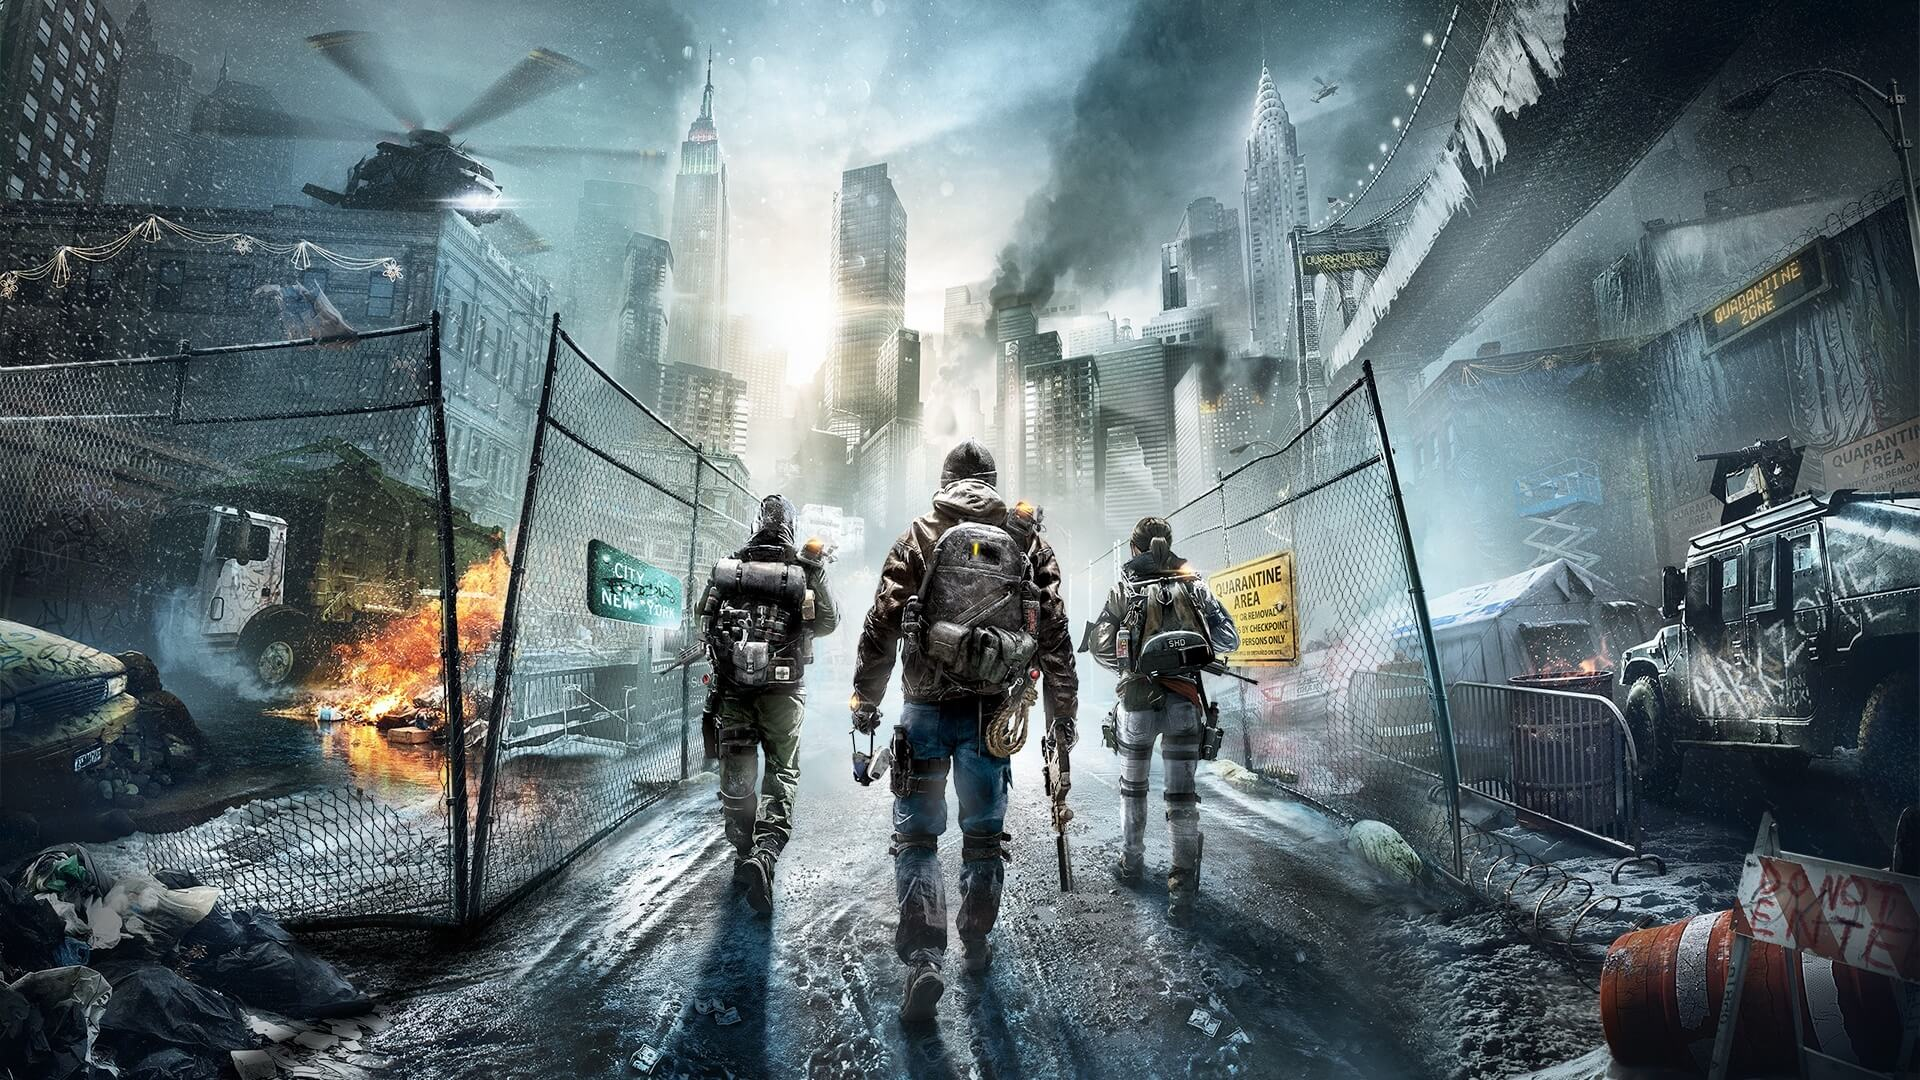 Скидки на выходных в Steam — сэкономьте на The Division, Dishonored, Dark Souls 2 и на других играх